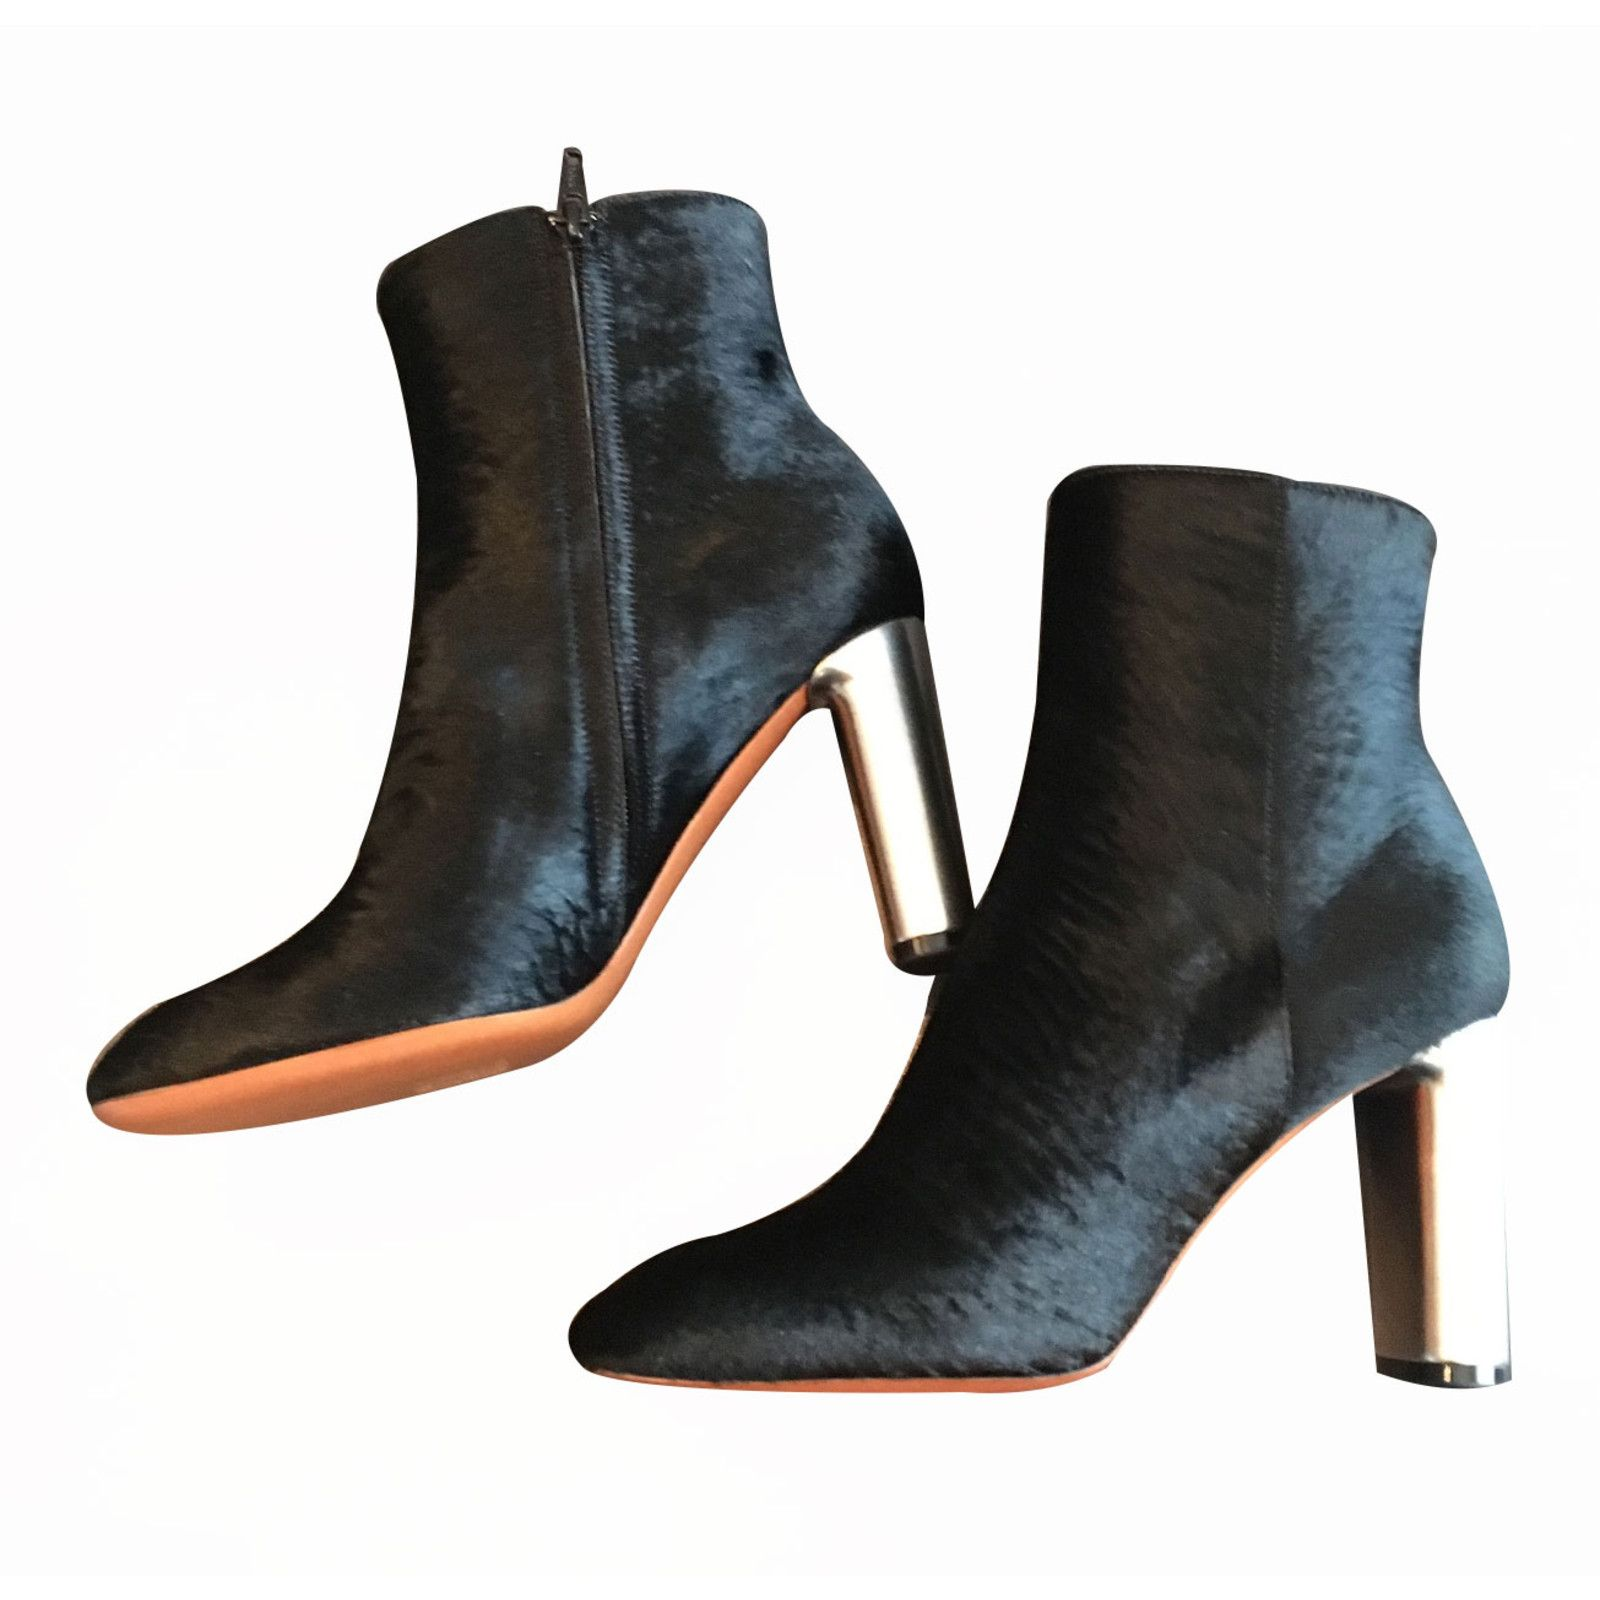 Outlet Fast Delivery Online Cheap Pre-owned - Pony-style calfskin ankle boots Celine Wholesale Price Cheap Price AyznI